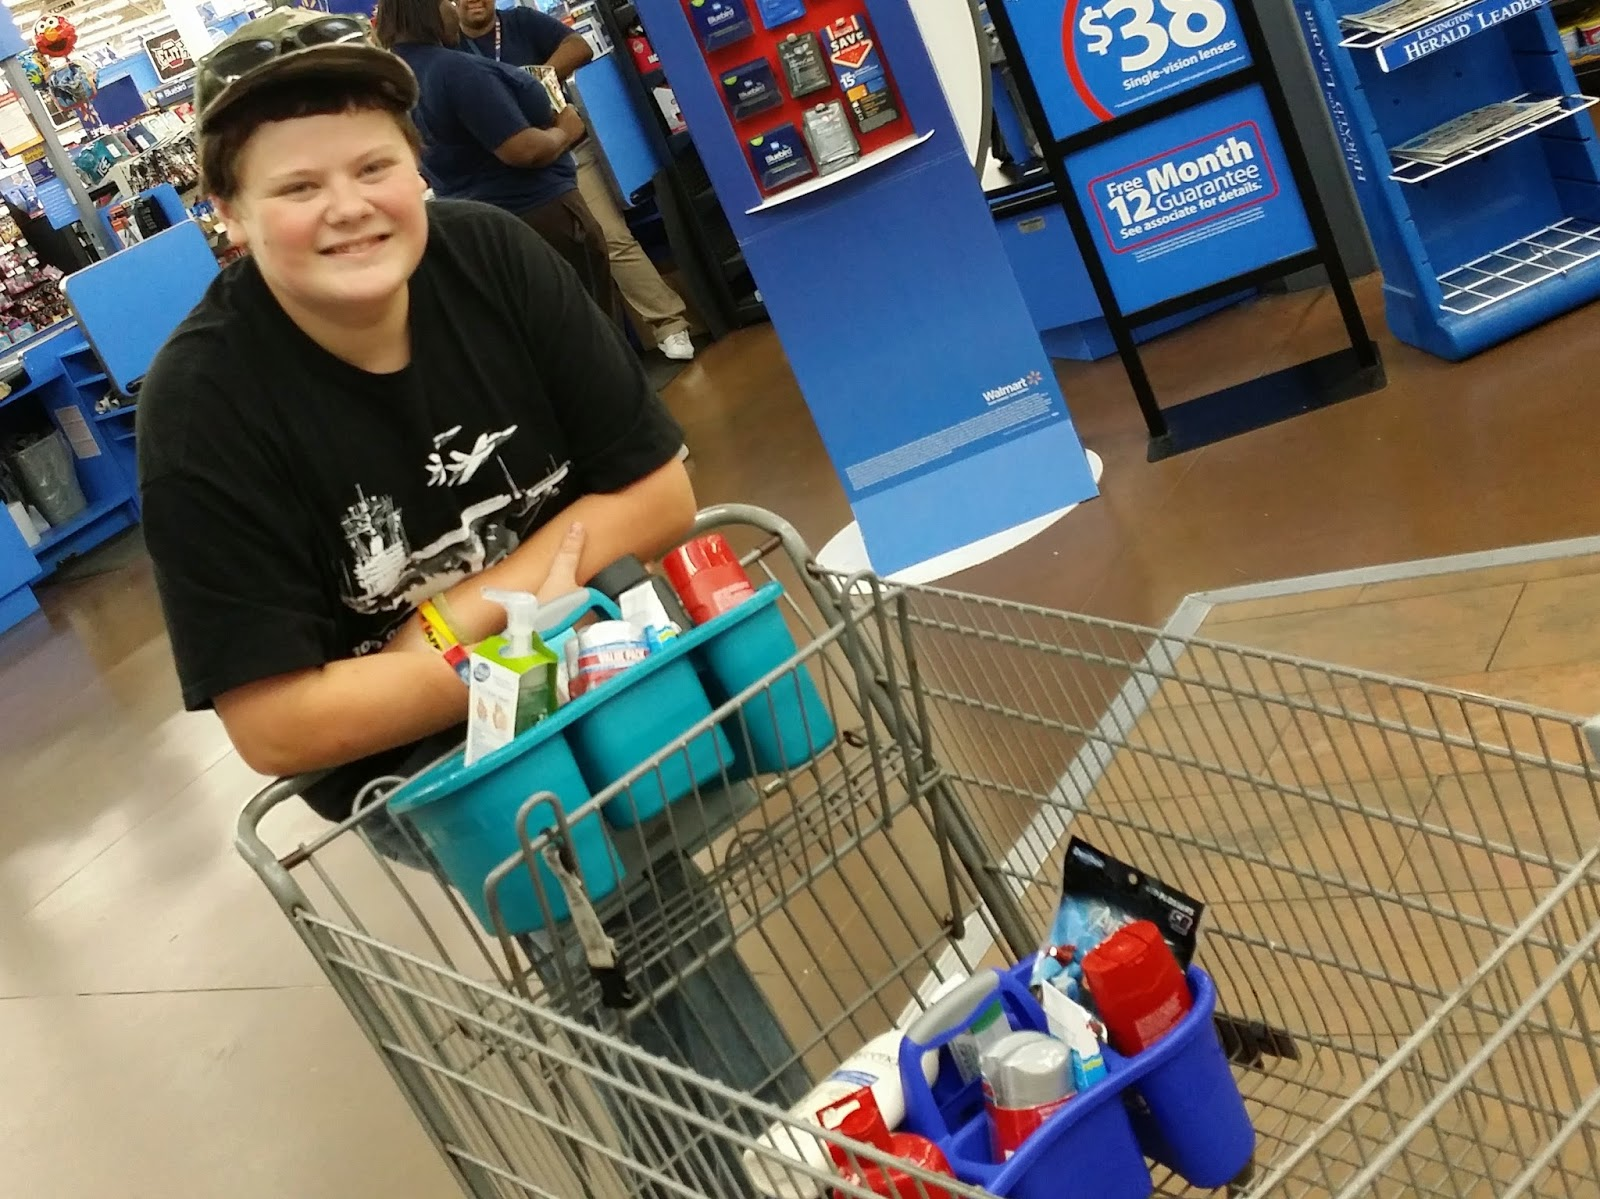 Saving Money and Tackling Teen Hygeine with the Walmart #SavingsCatcher